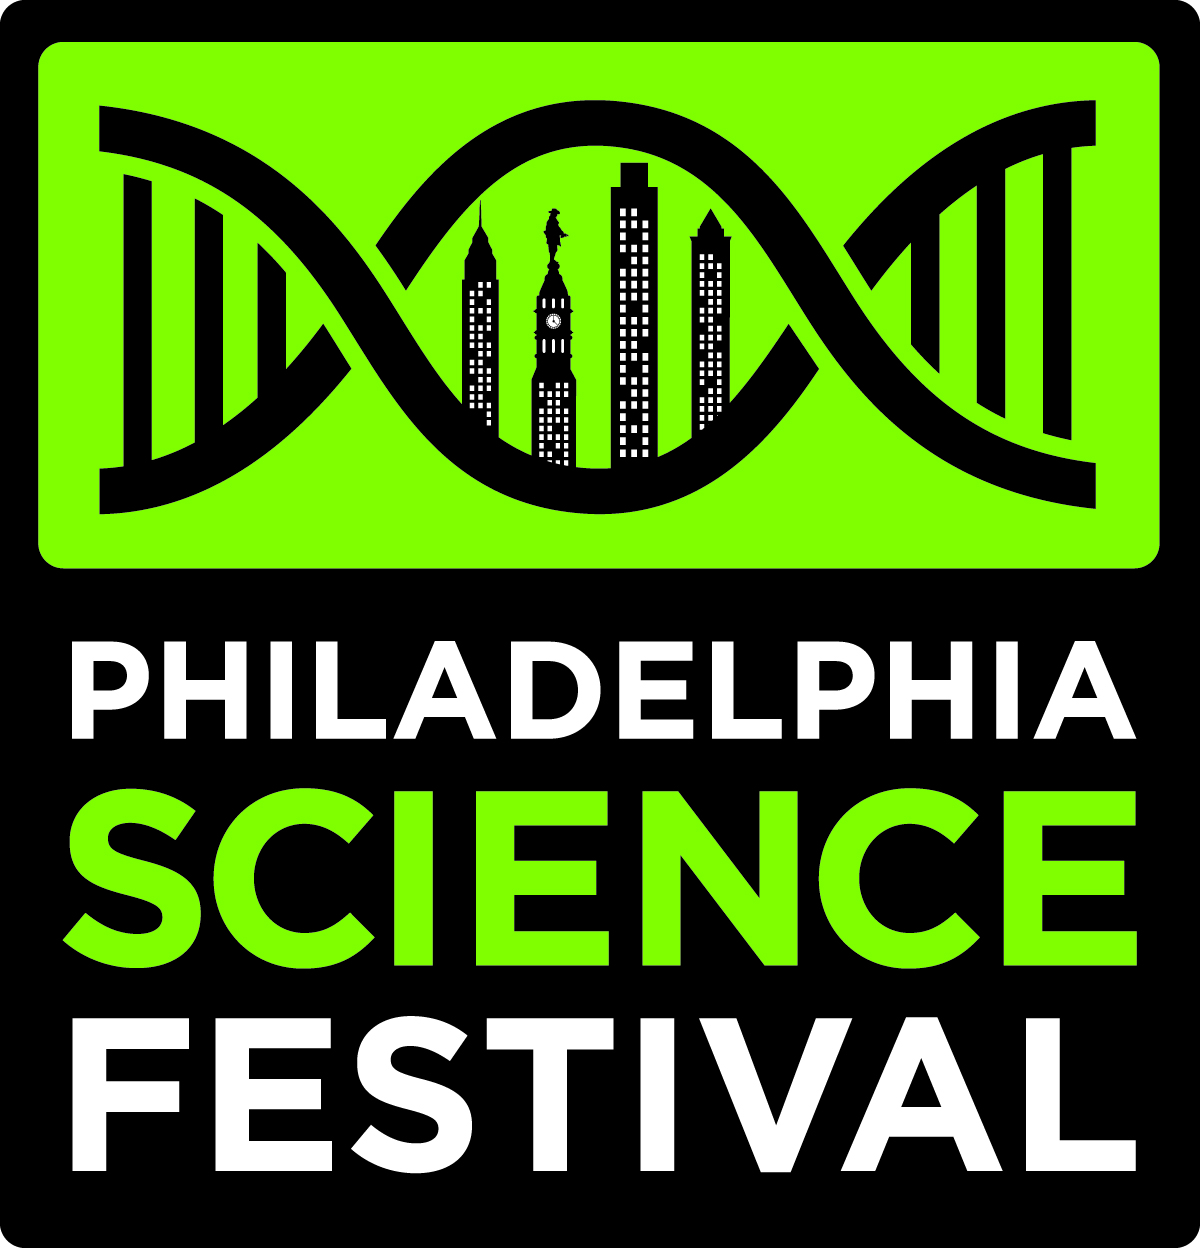 Philadelphia Science Festival